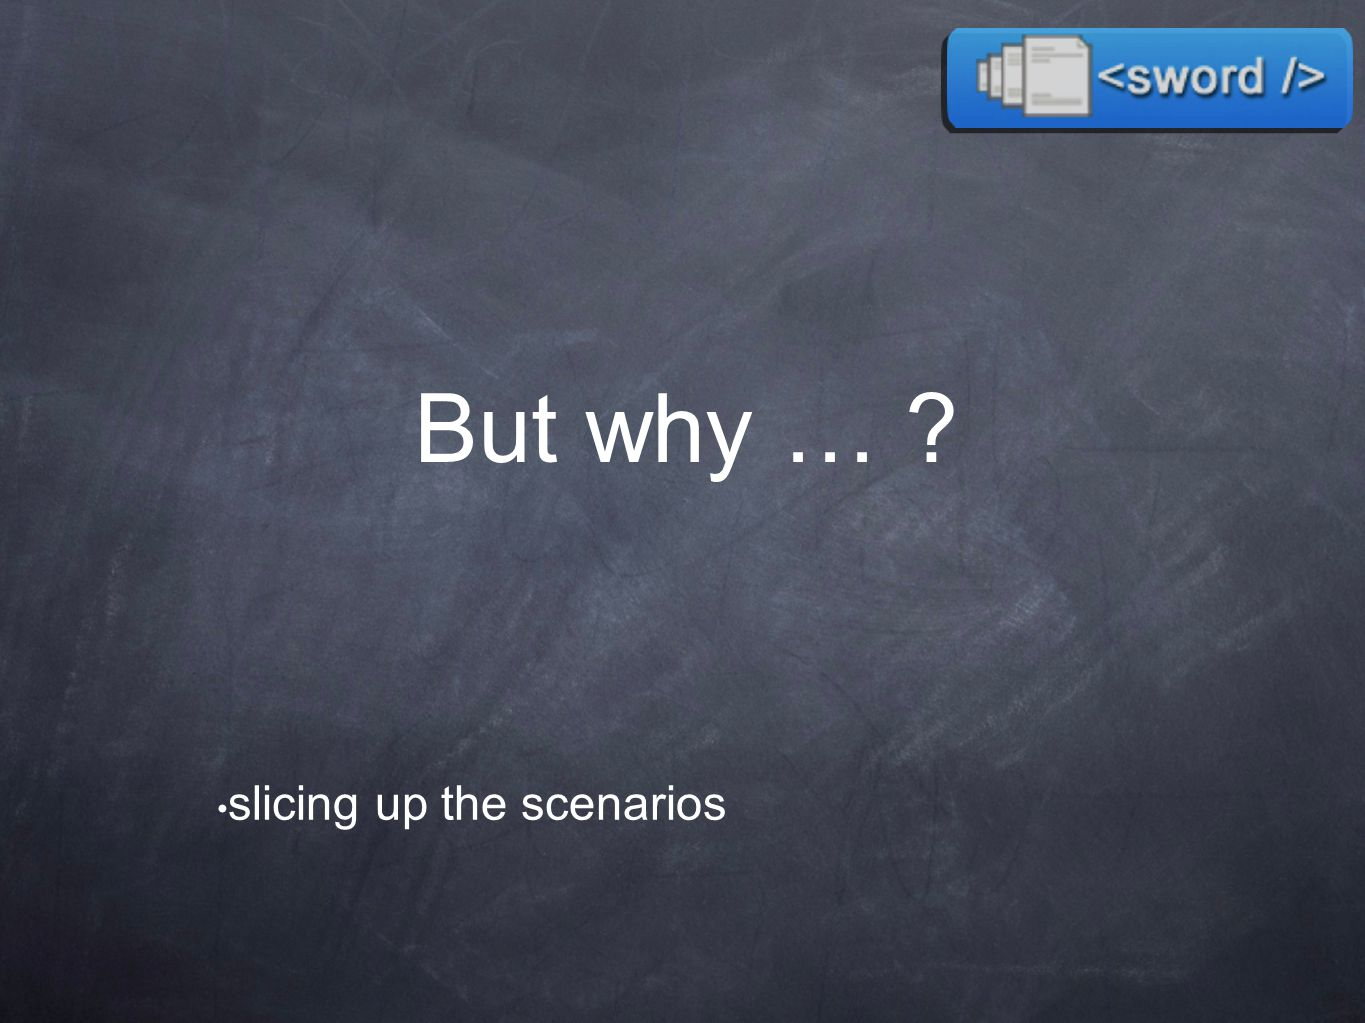 But why … slicing up the scenarios